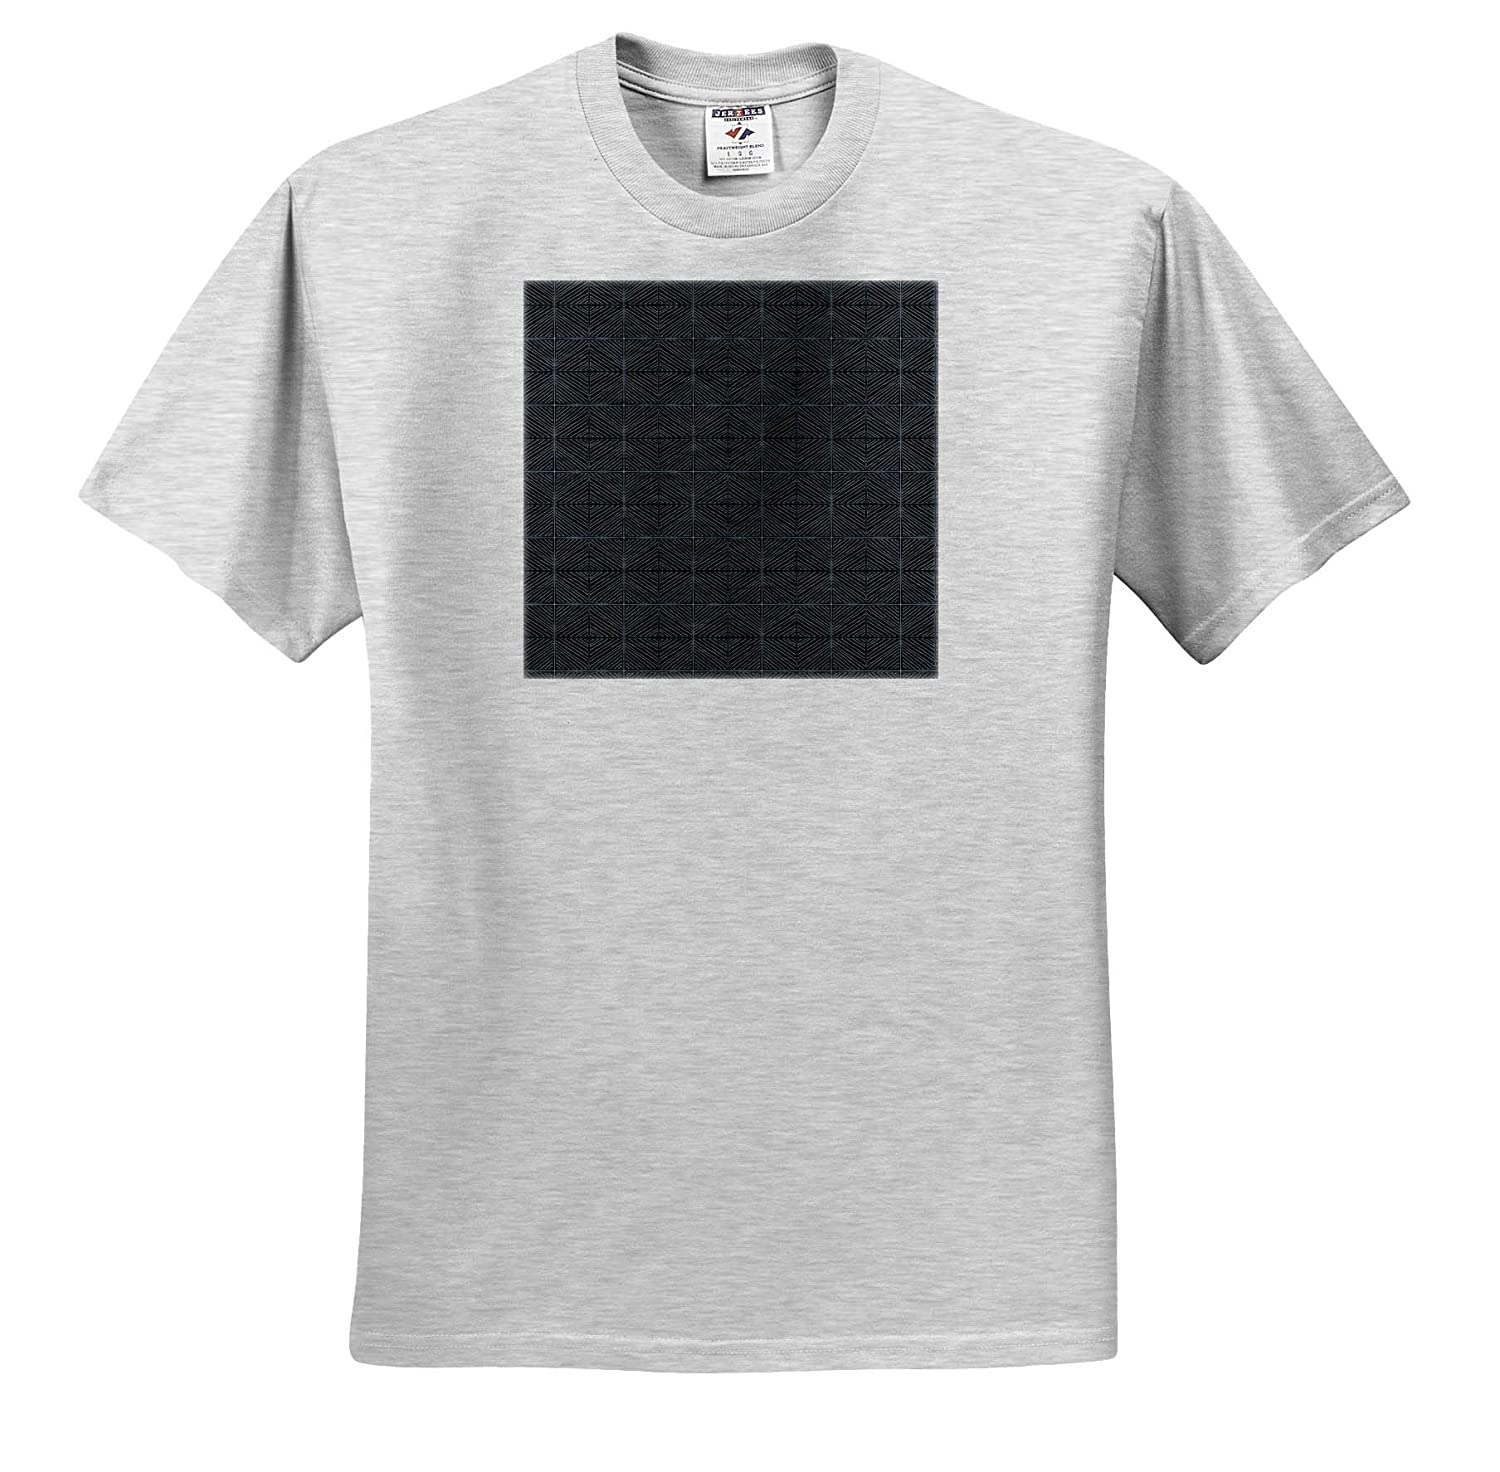 Pattern Geometrical Simple Abstract Geometric Pattern of White Squares T-Shirts 3dRose Alexis Design Lines on Black